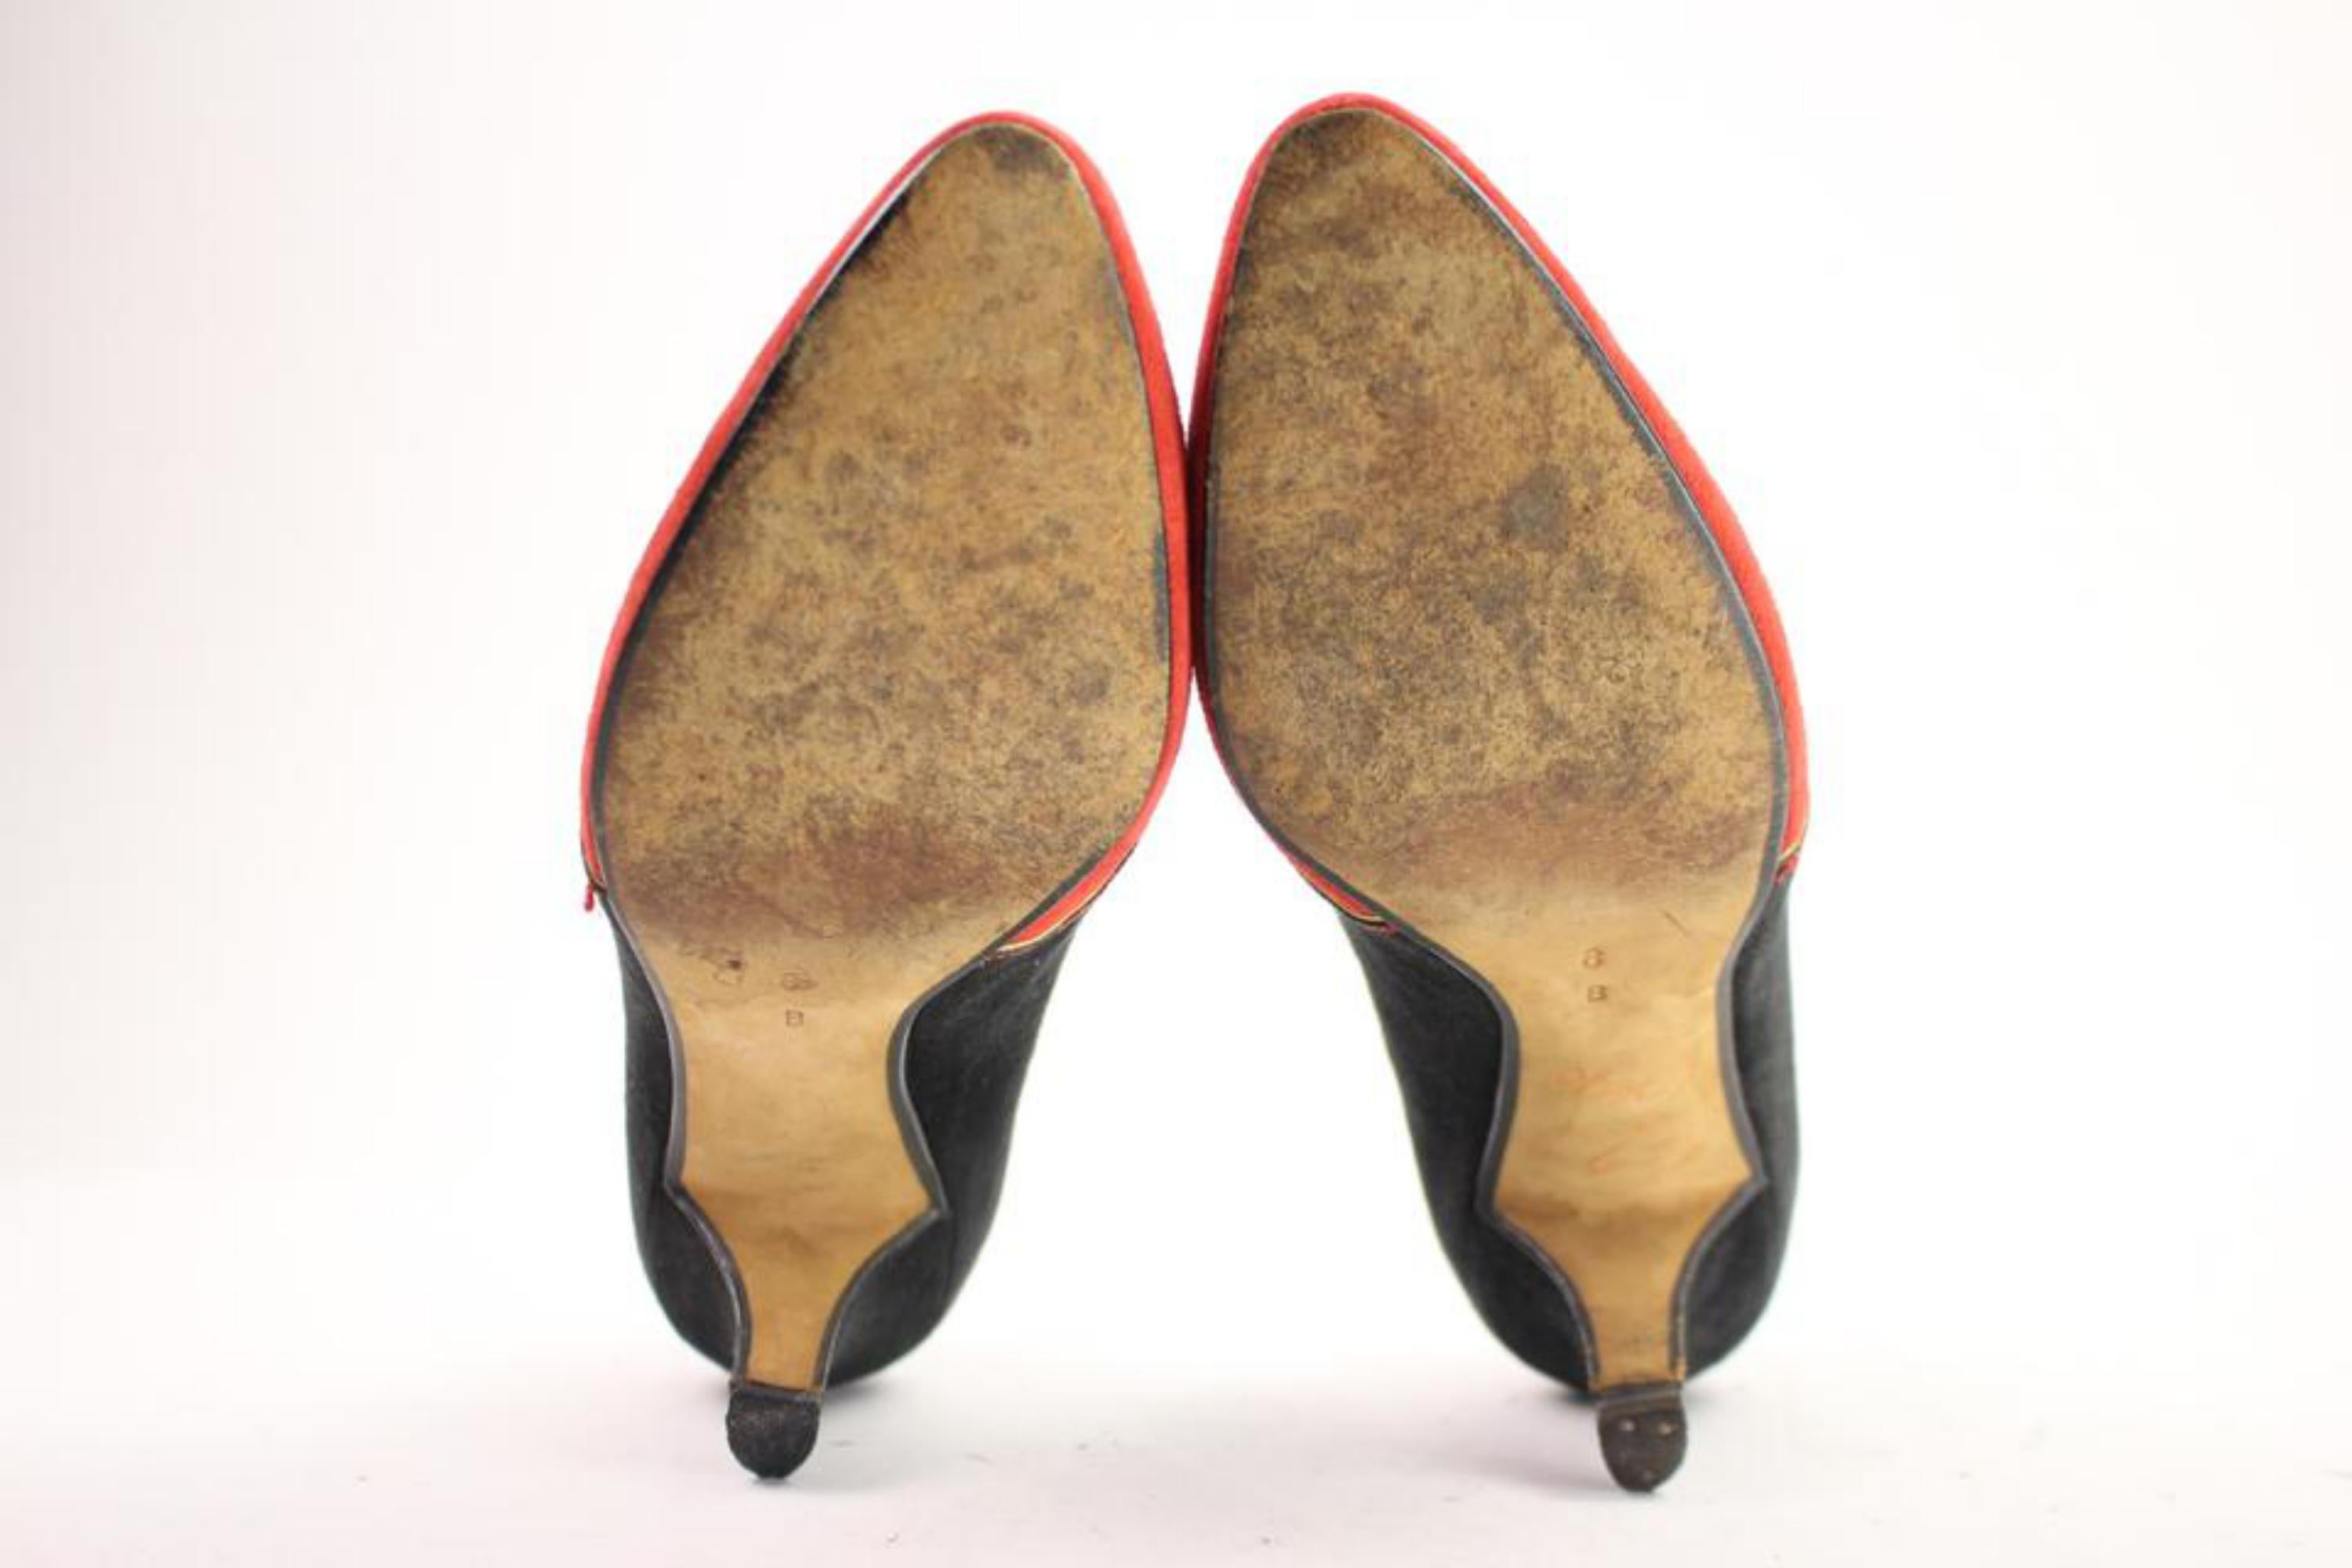 3cde10b784db Saks Fifth Avenue Black X Red Two-tone Heels 21mis104 Aplm1 Pumps For Sale  at 1stdibs